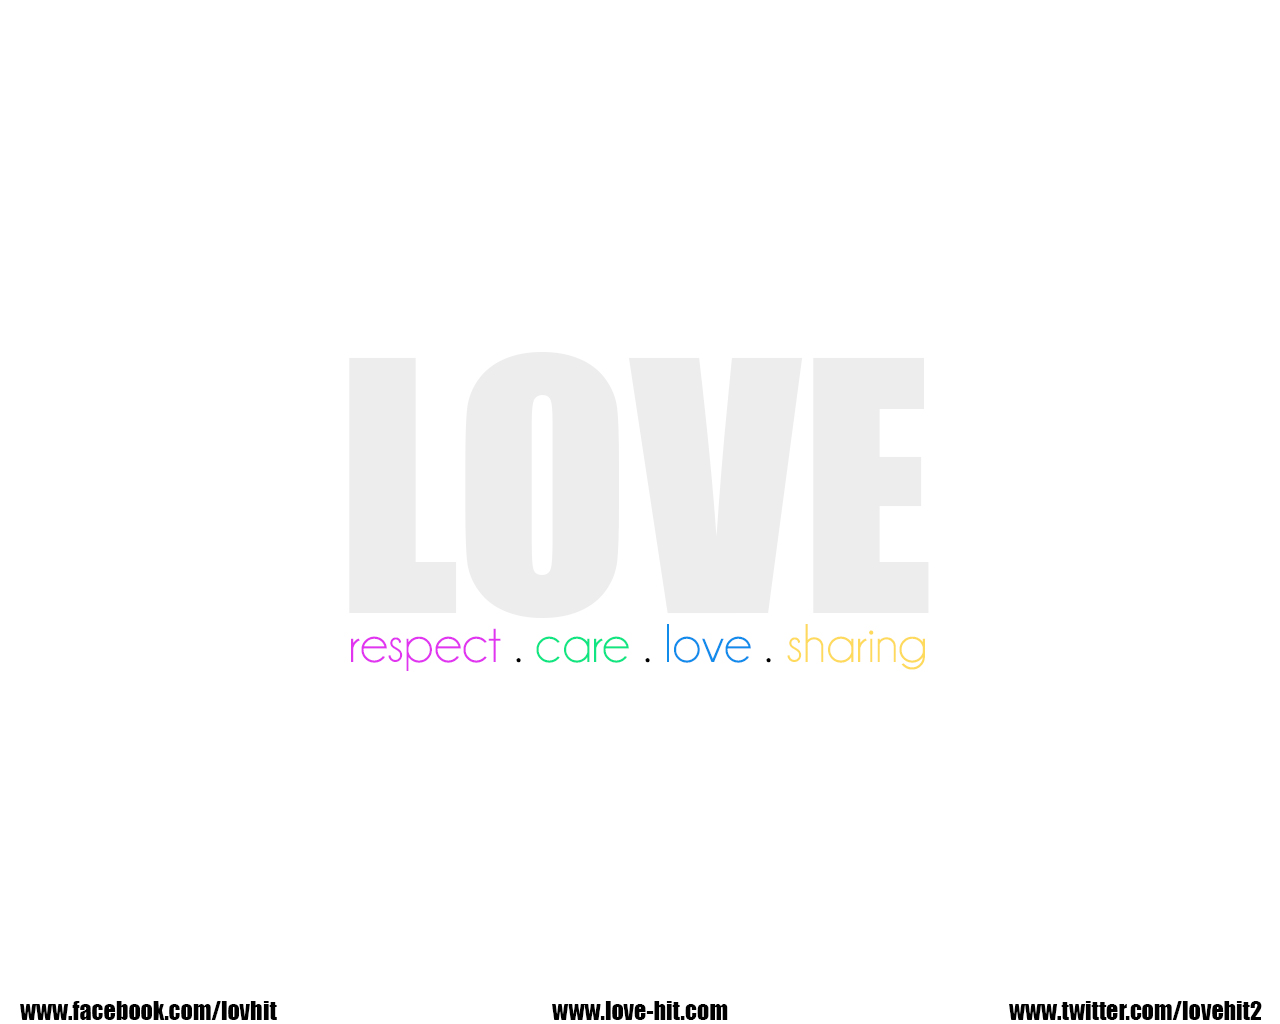 love is respect #notjustphysical is a social media advertising campaign to educate young adults about the signs of teen dating abuse and where to get help.